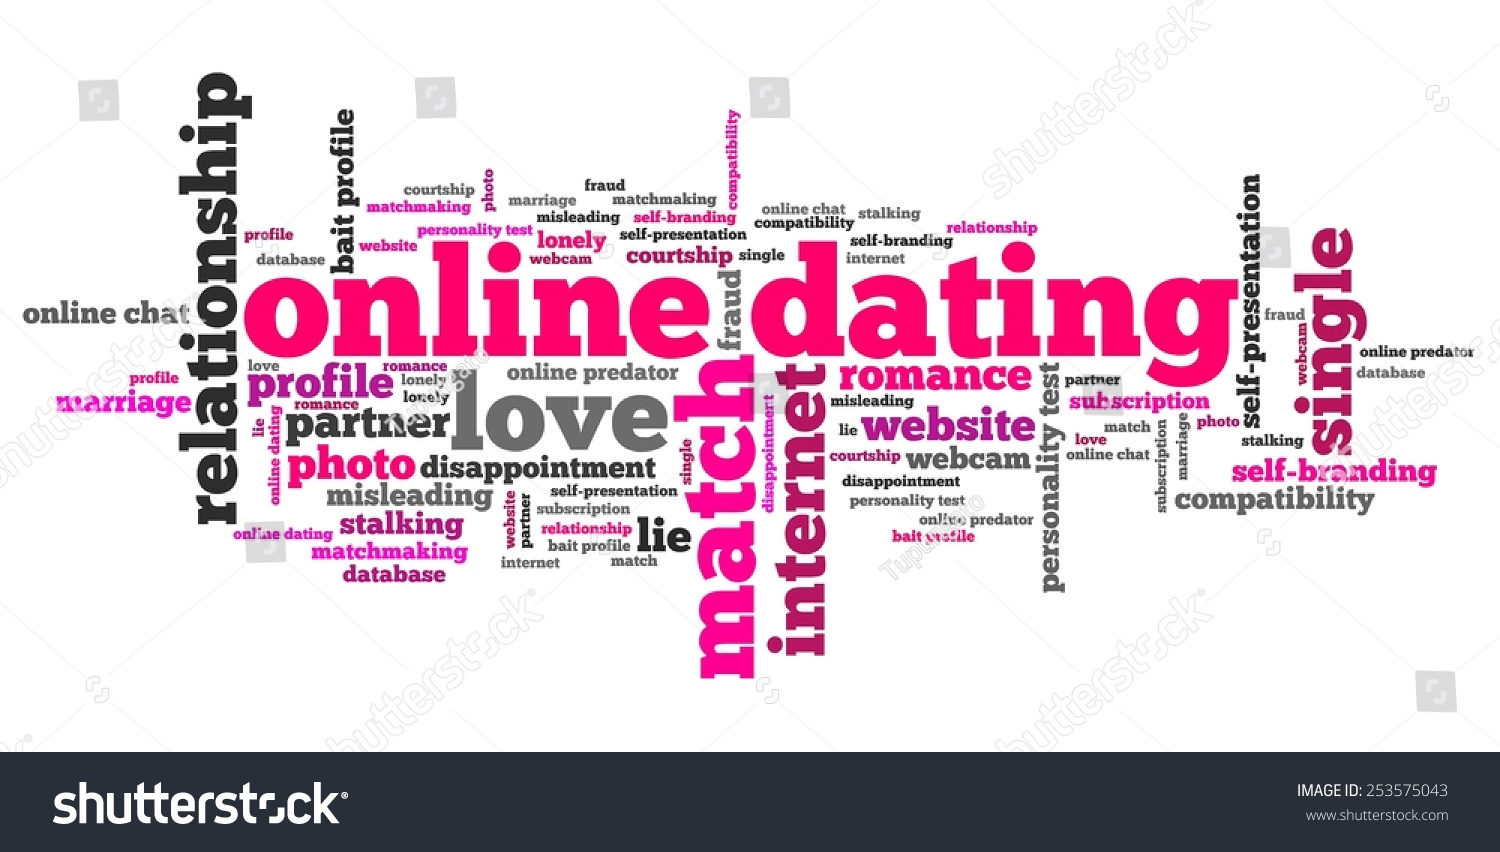 online dating disappointment